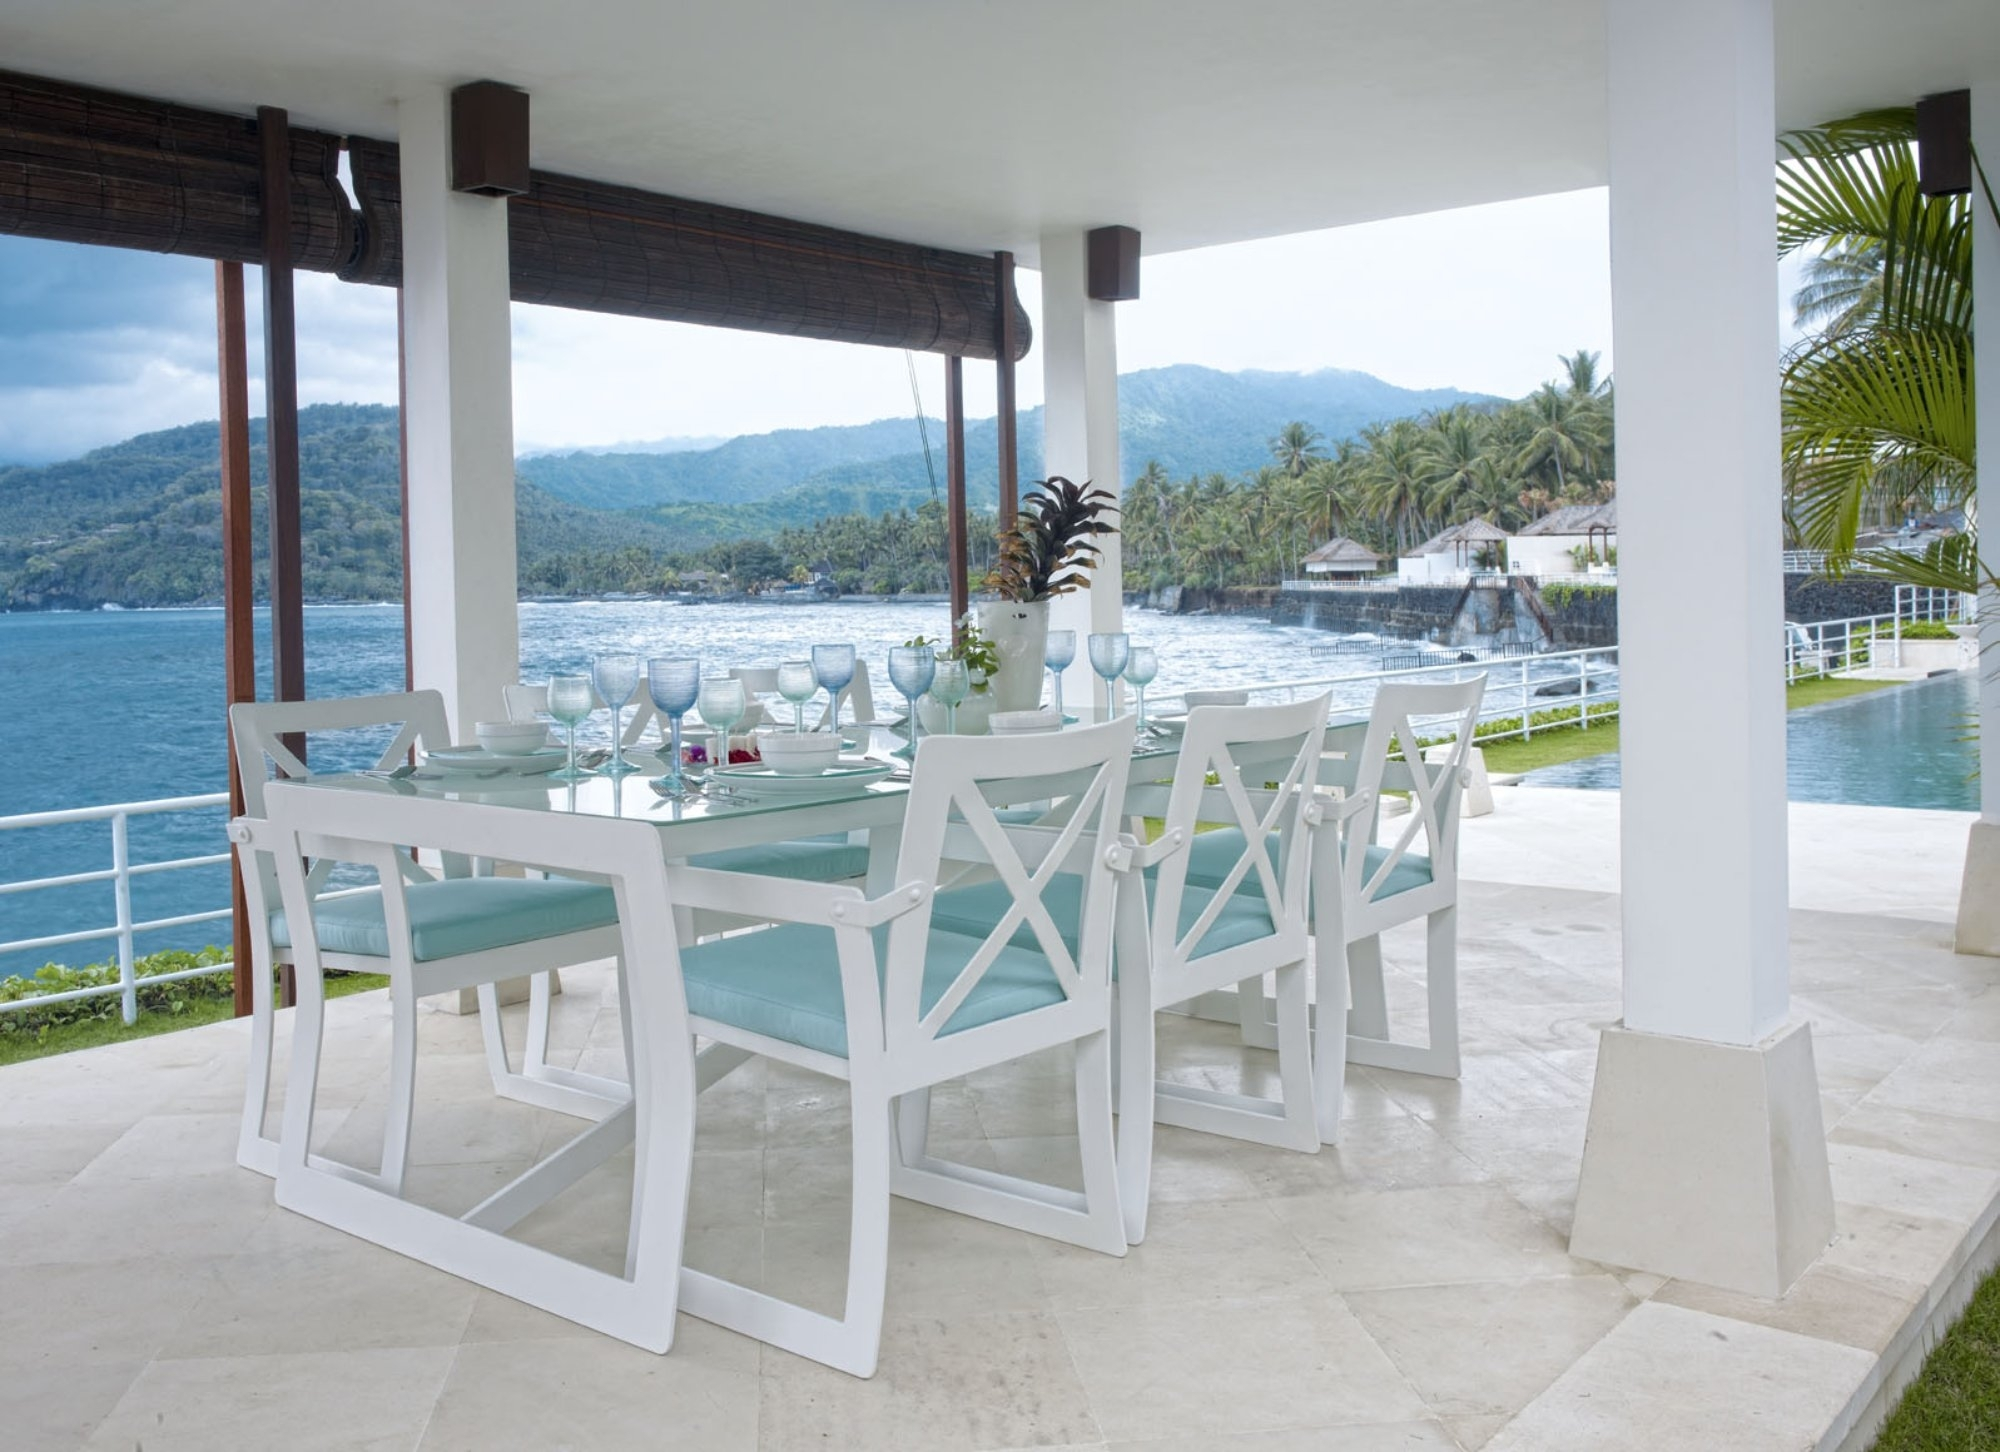 Image of: 5 Chair With Table Outdoor Hospitality Furniture